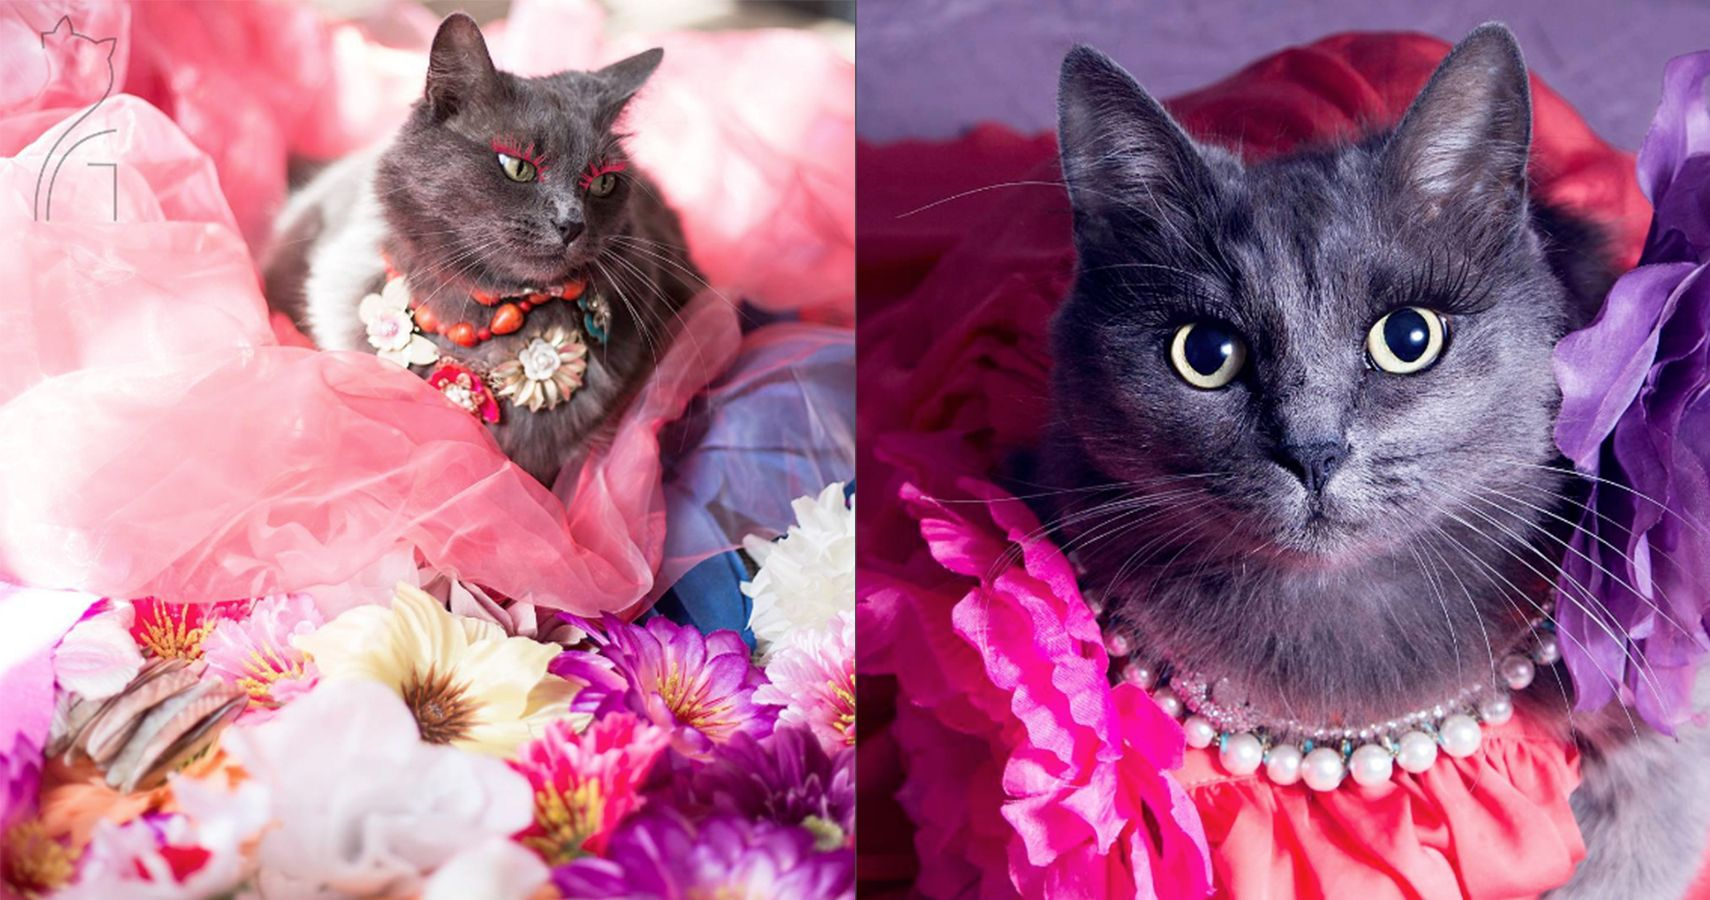 Meet Pitzush, the Most Glamorous Kitty in History